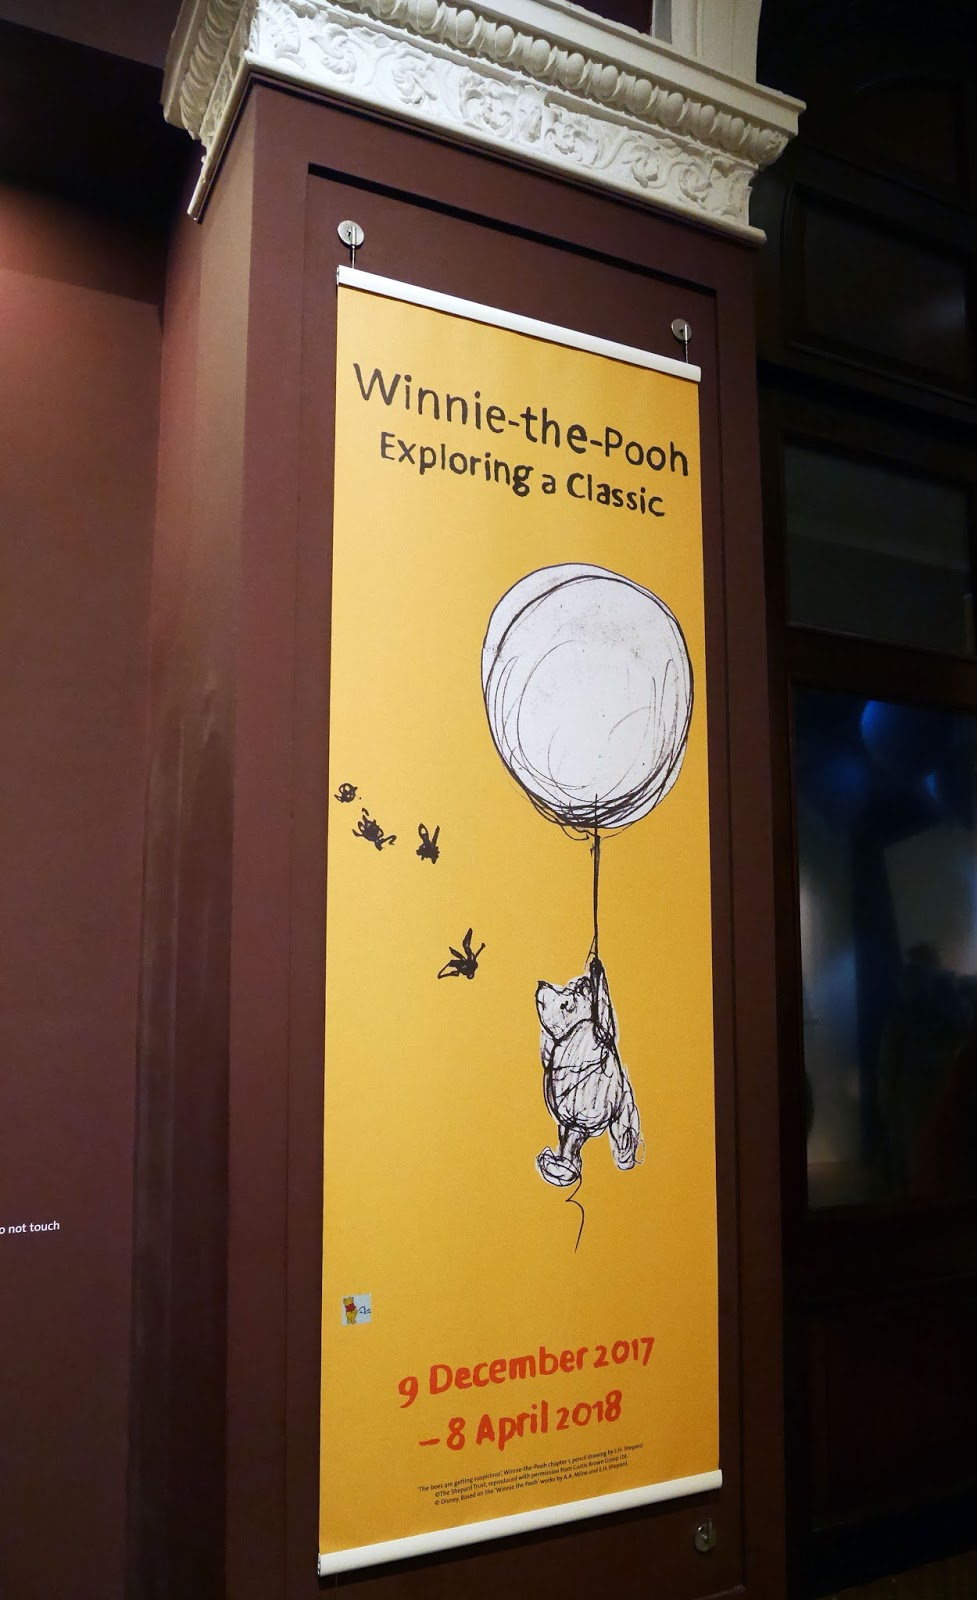 Winnie the Pooh: Exploring a Classic exhibition at the Victoria and Albert Museum, London